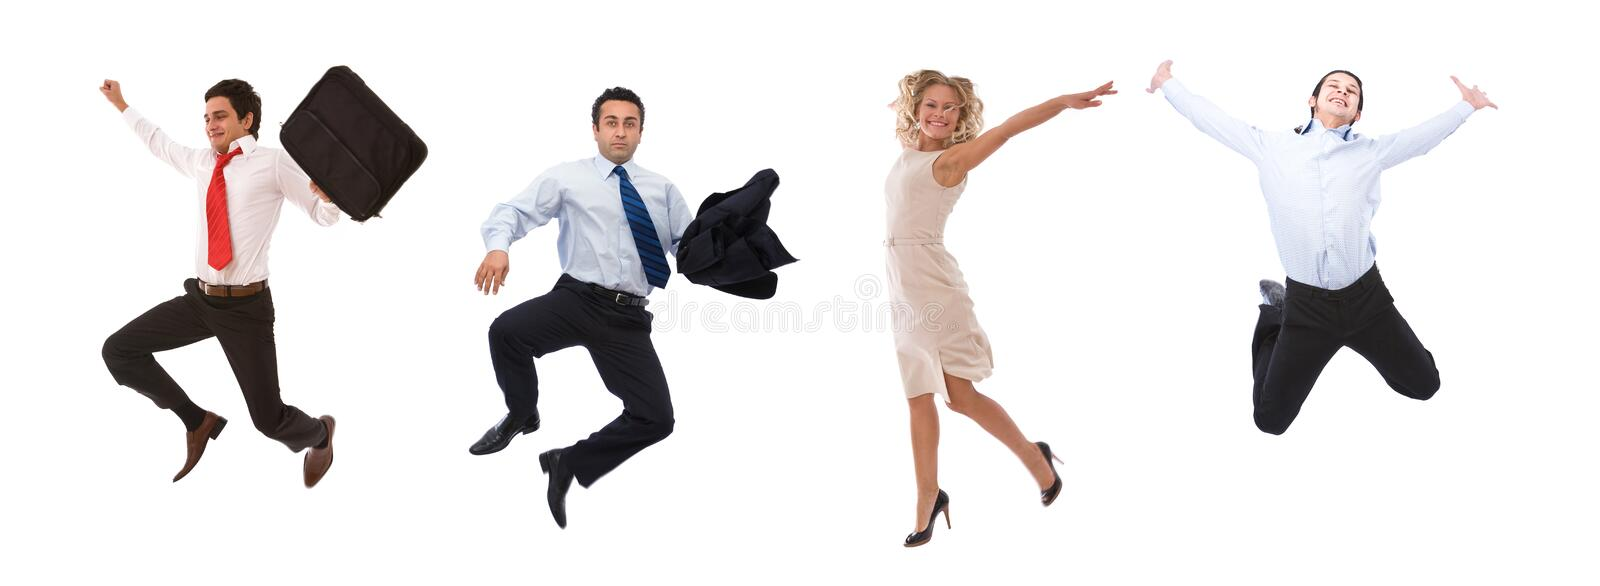 Very happy business people royalty free stock photography